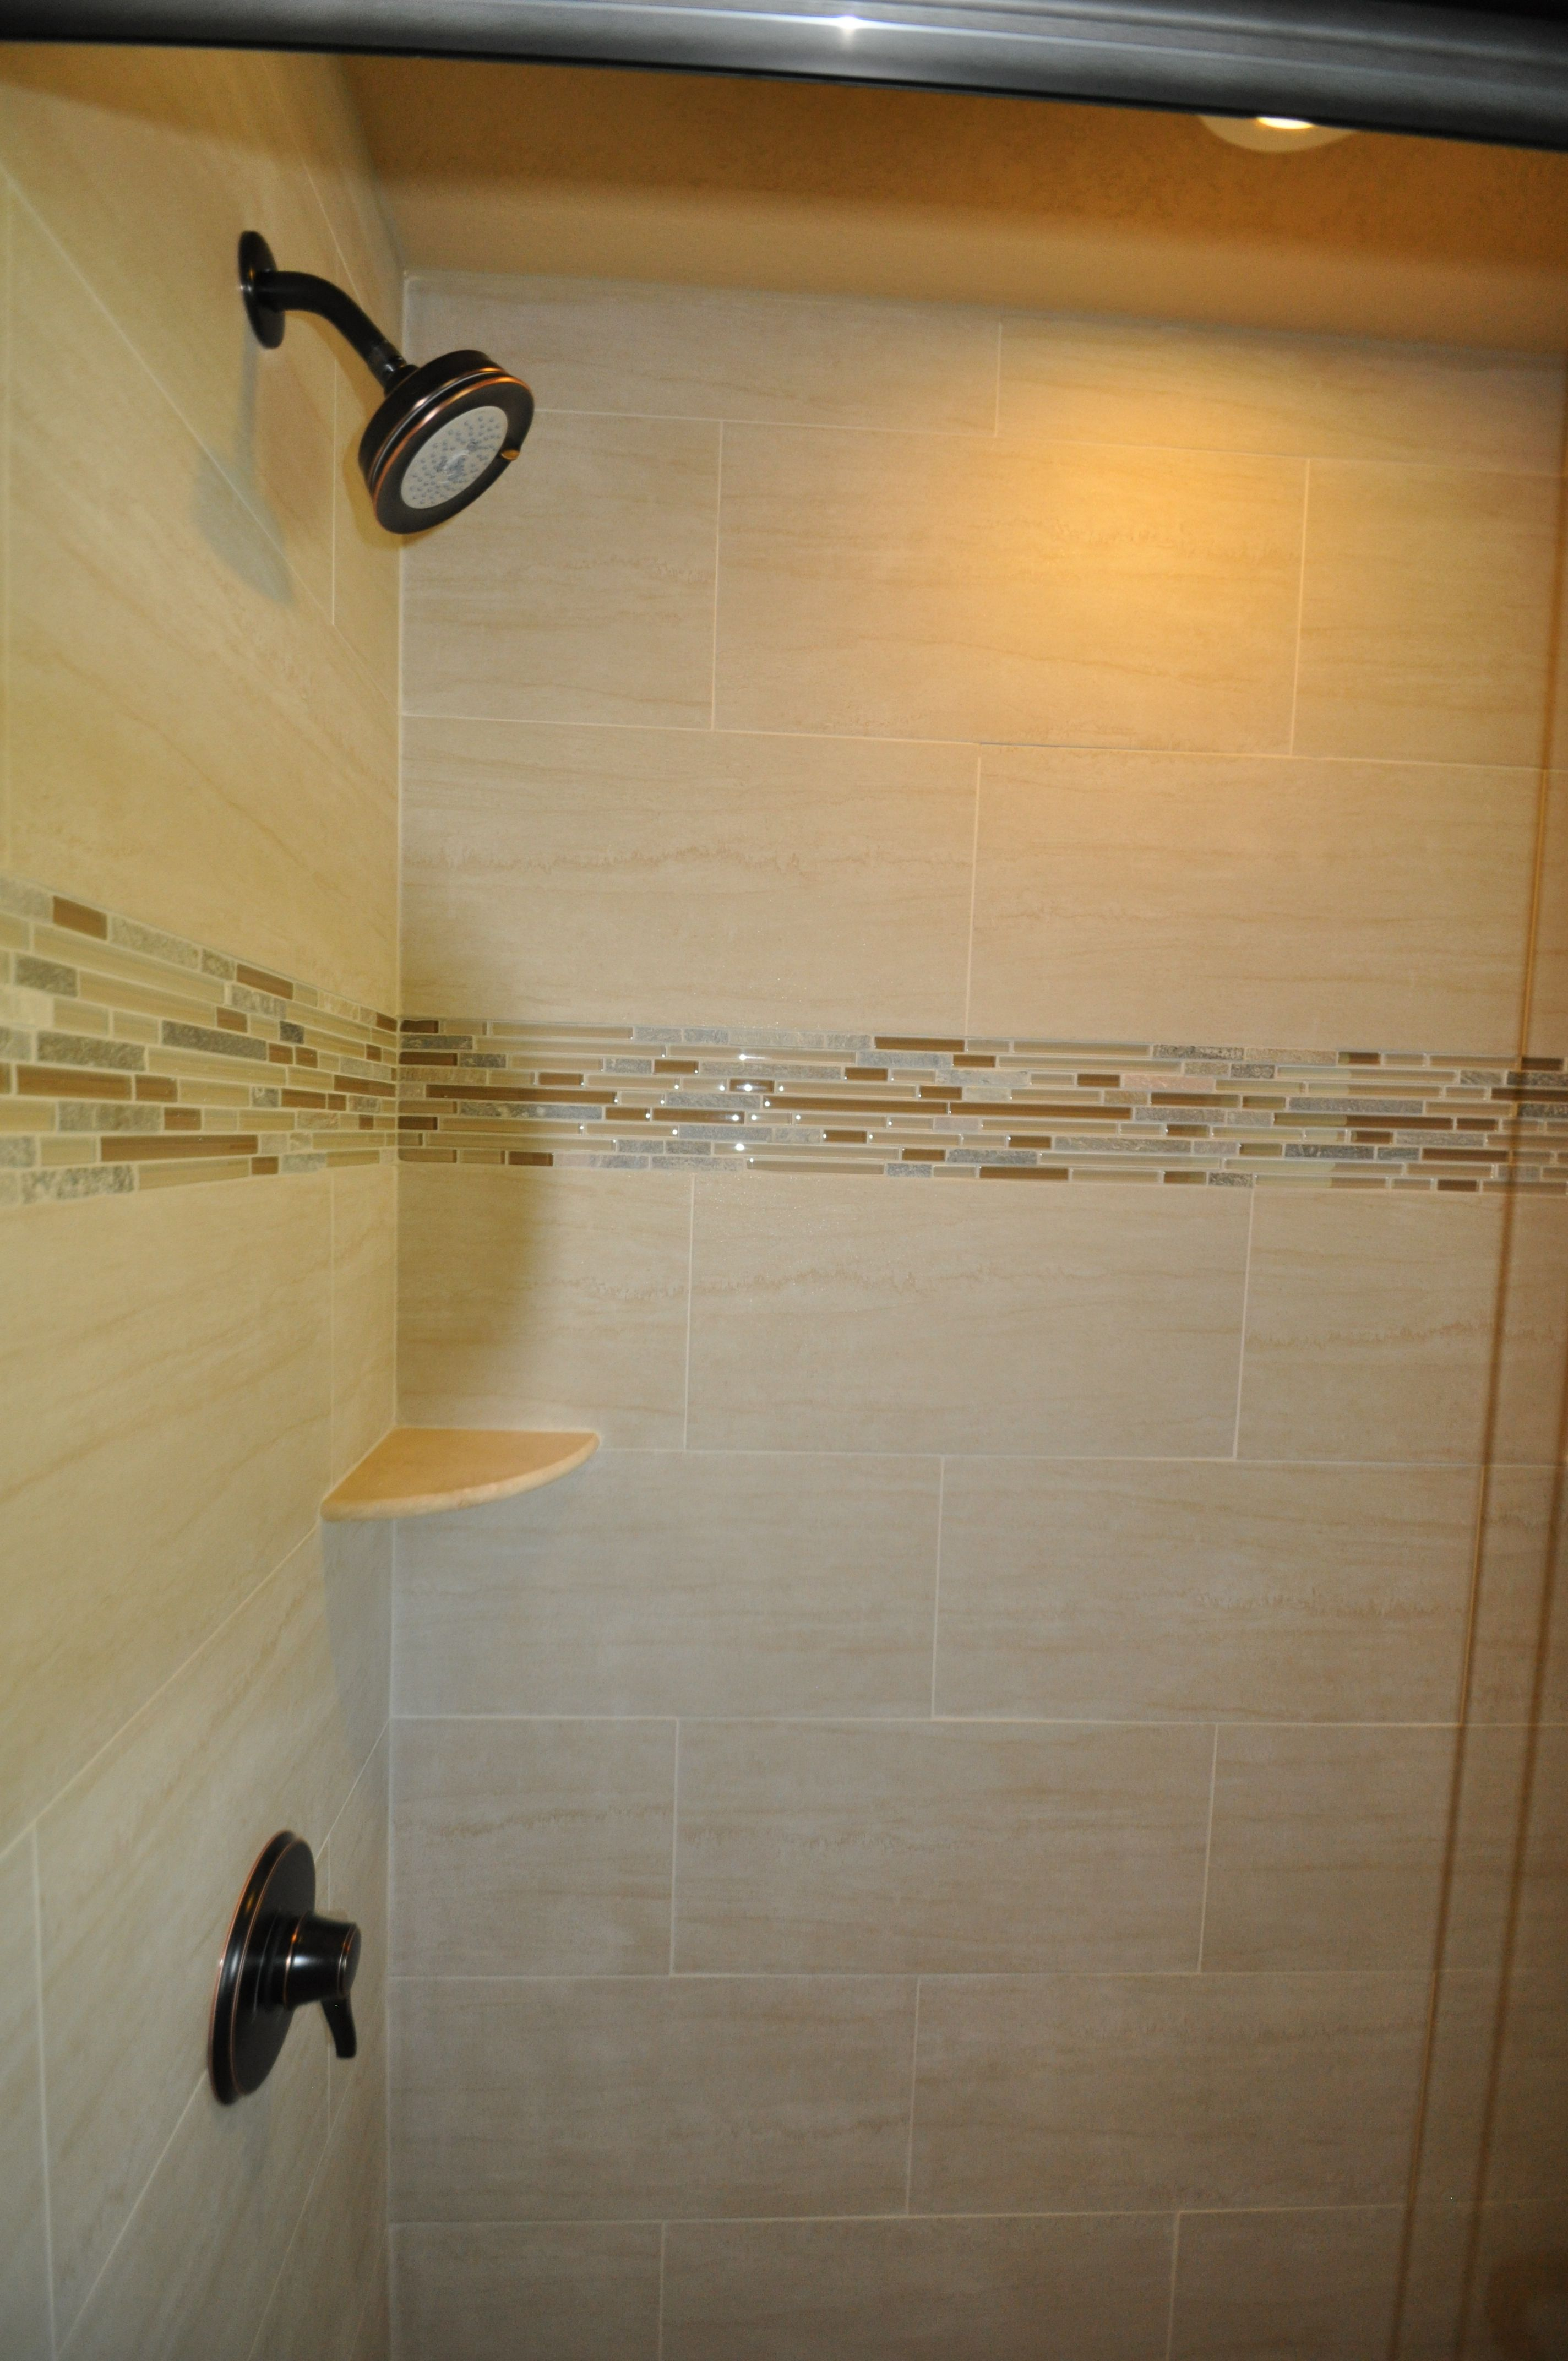 Cheaper than using fancy tiles on the whole shower, and adds a nice ...